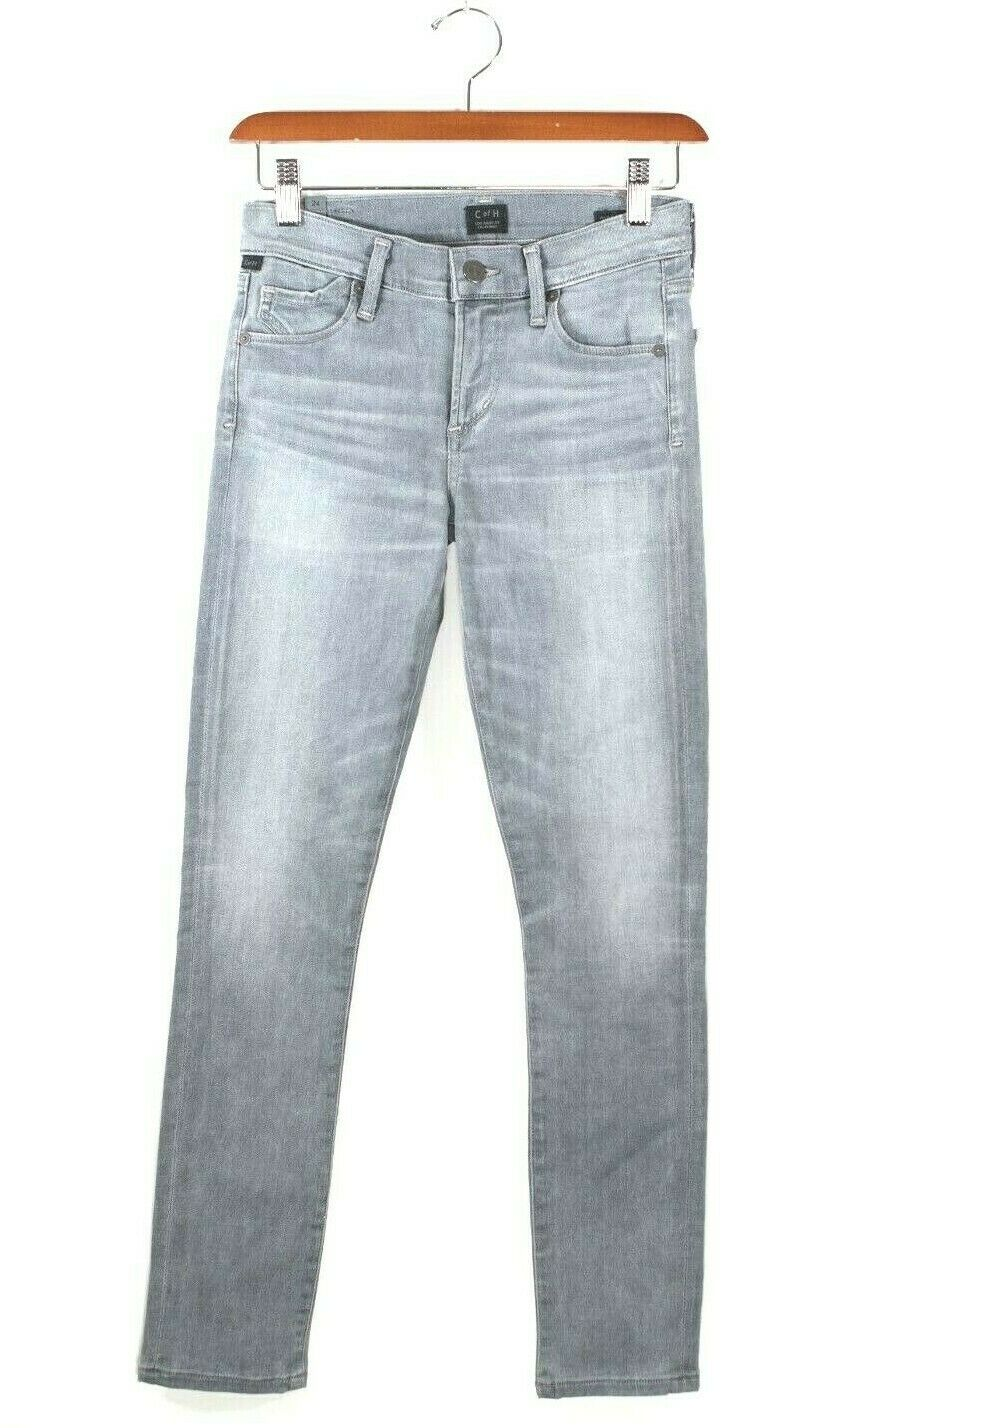 Citizens of Humanity Womens Size 24 Gray Denim Avedon Ankle Jeans Skinny NWT